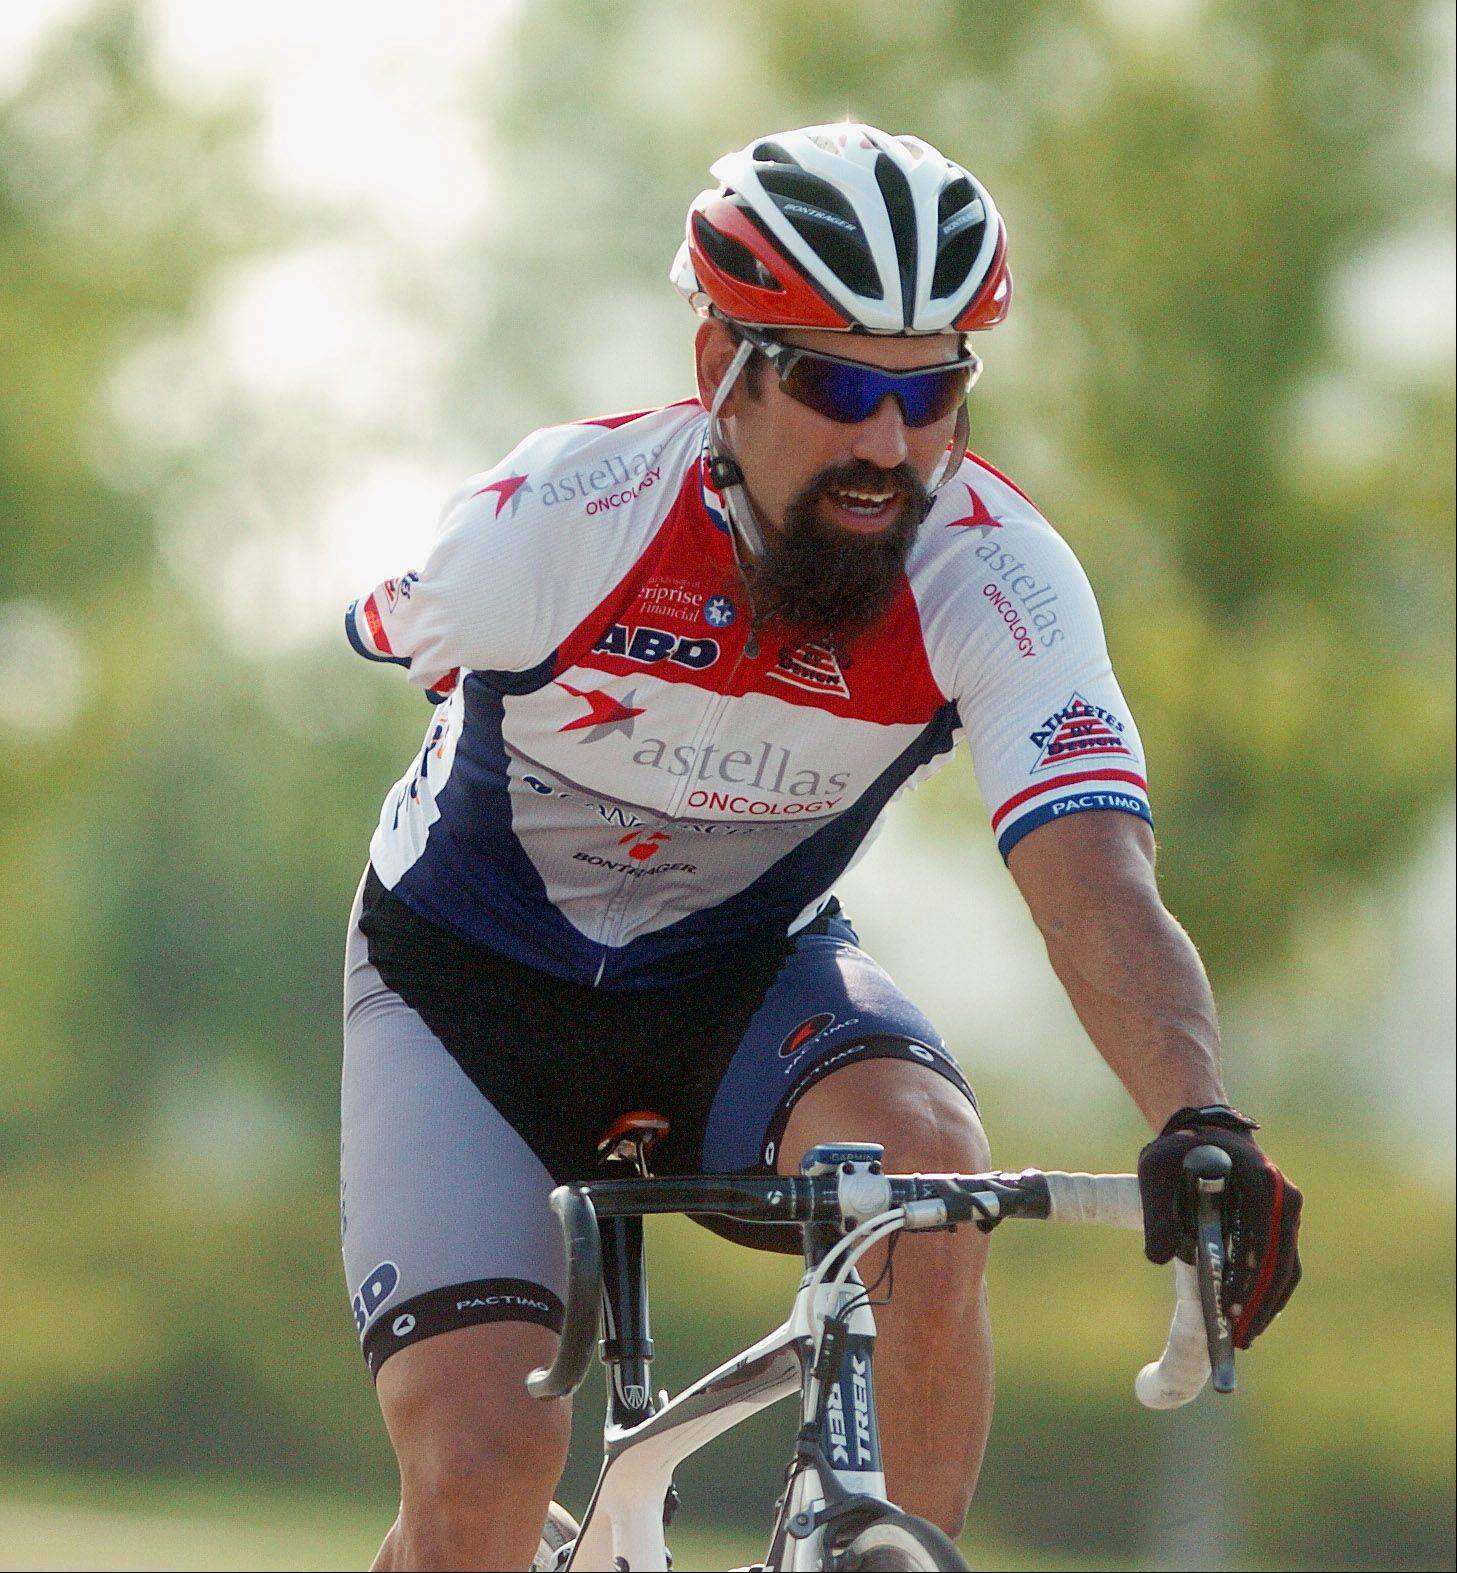 Joe Berenyi of Oswego lost an arm and a kneecap in a 1994 construction accident. But that won't stop him from competing in five cycling events next month for Team USA at the Paralympic Games in London.